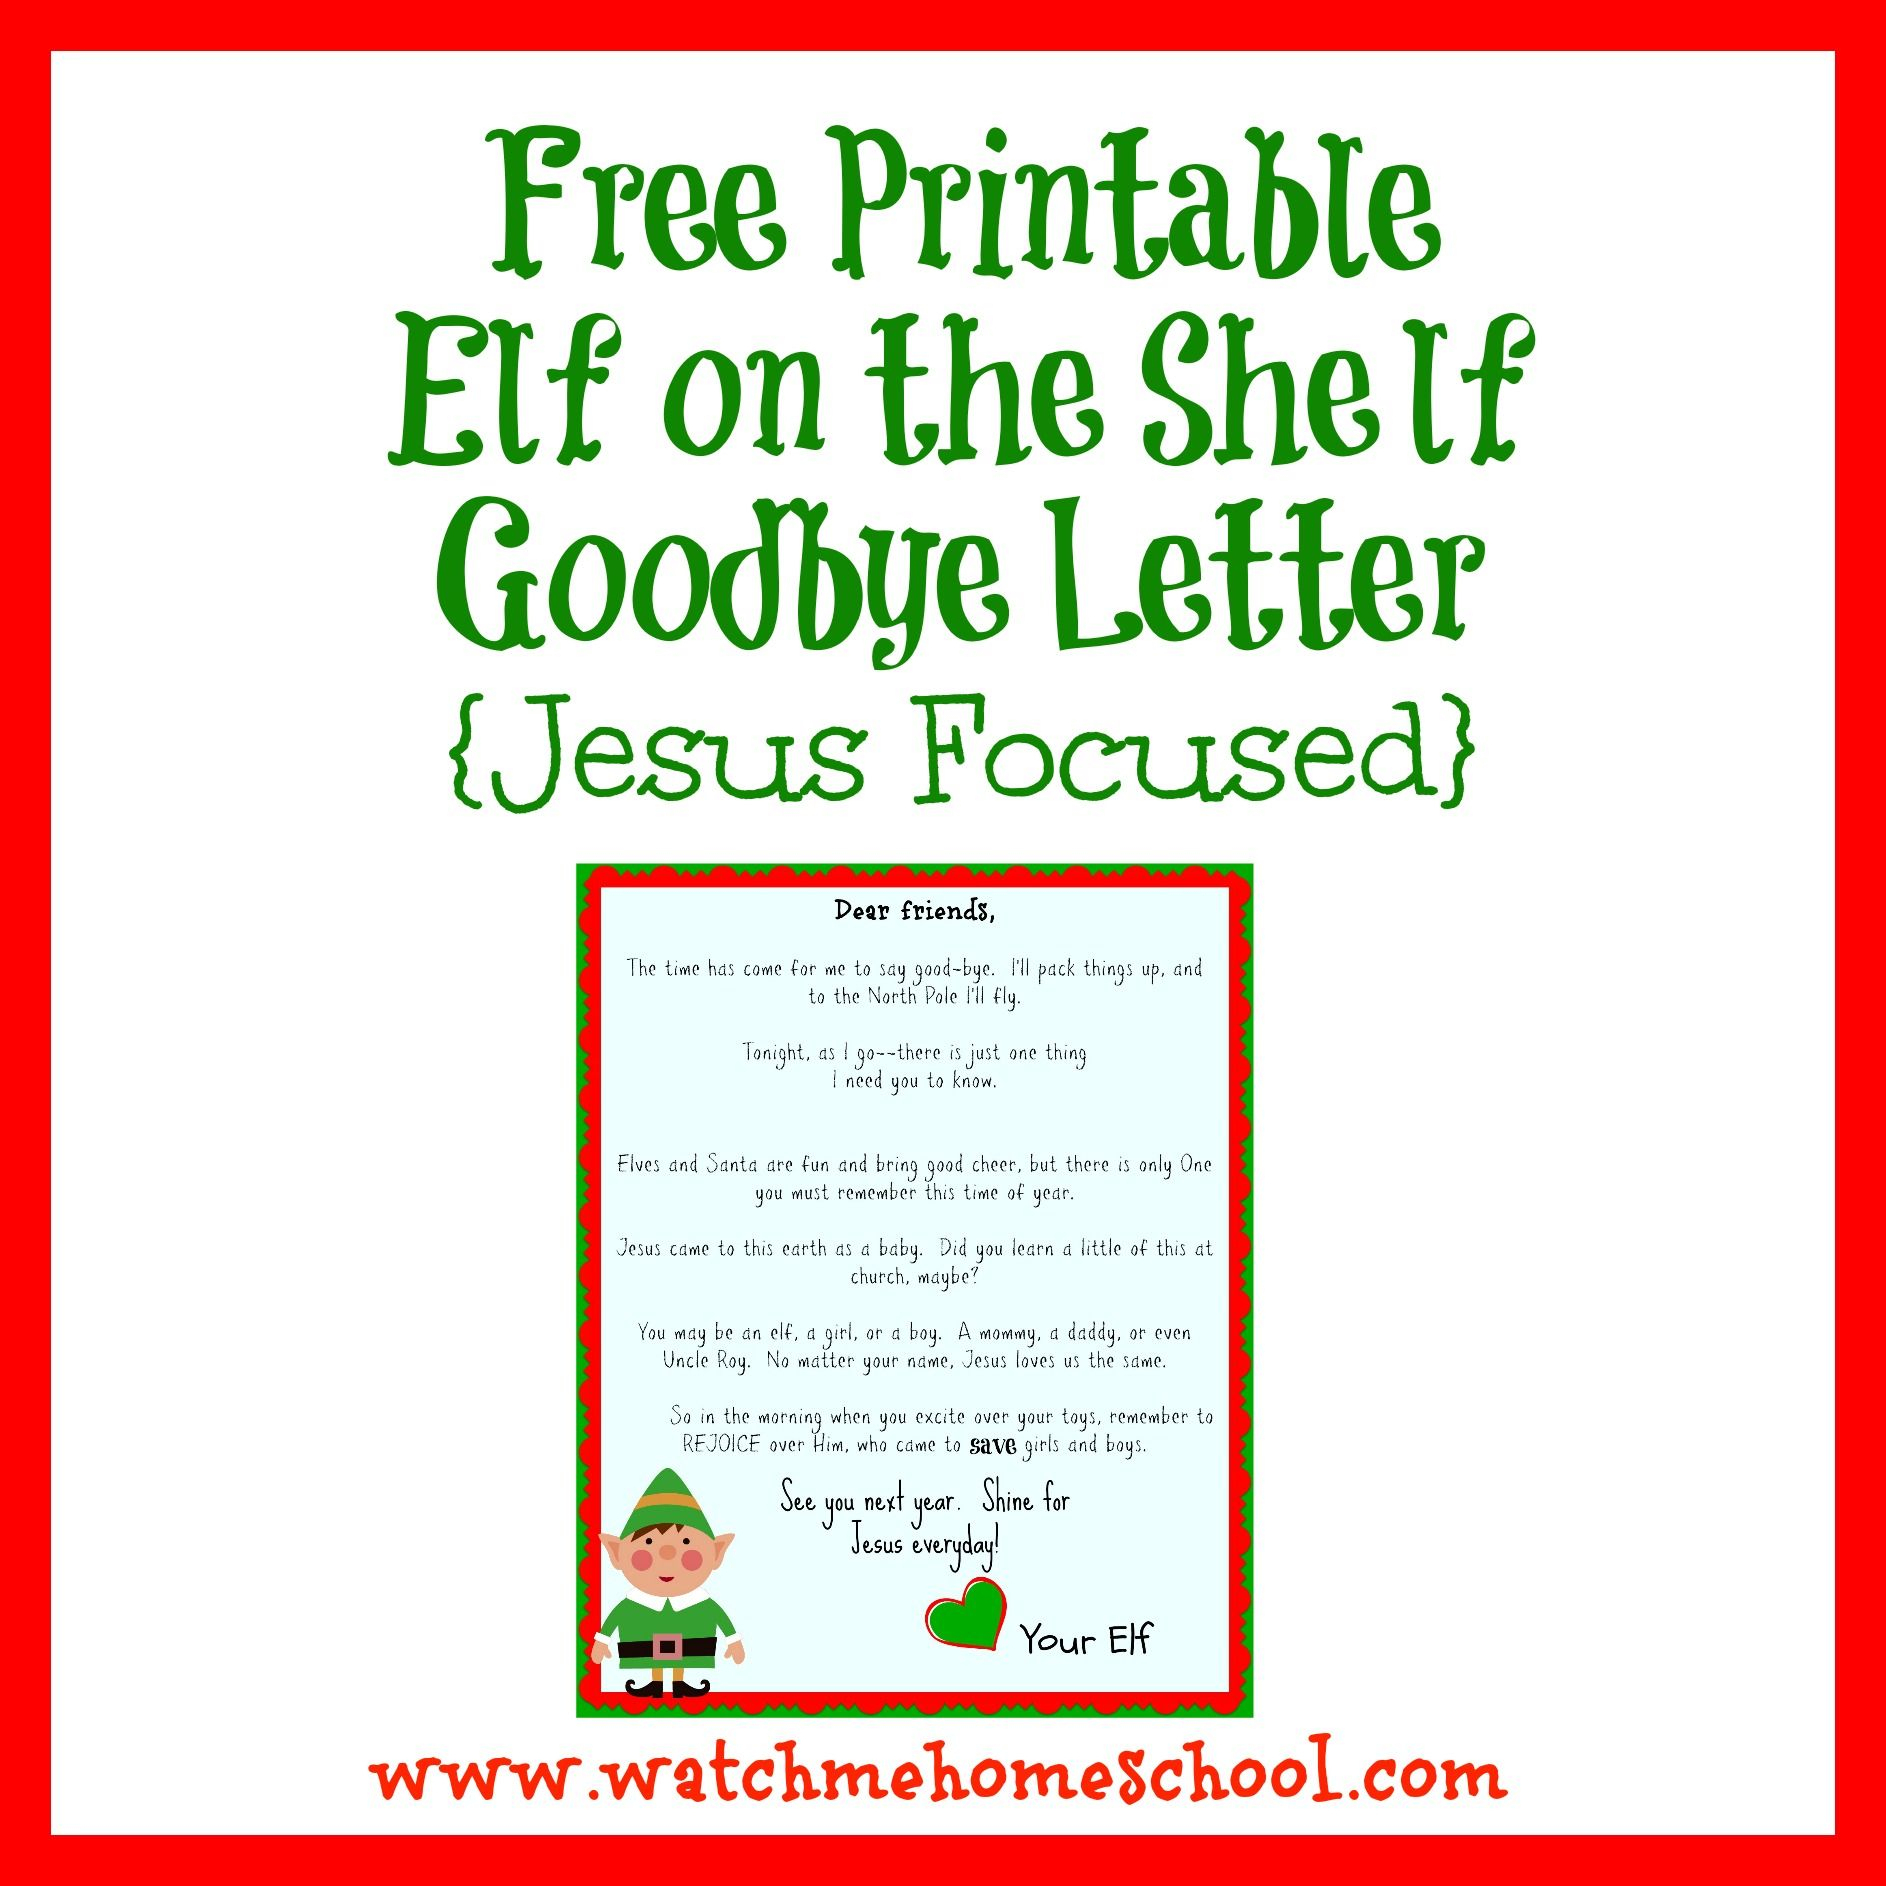 Elf On The Shelf Farewell Letter Printable | Elf On The Shelf - Elf On A Shelf Goodbye Letter Free Printable